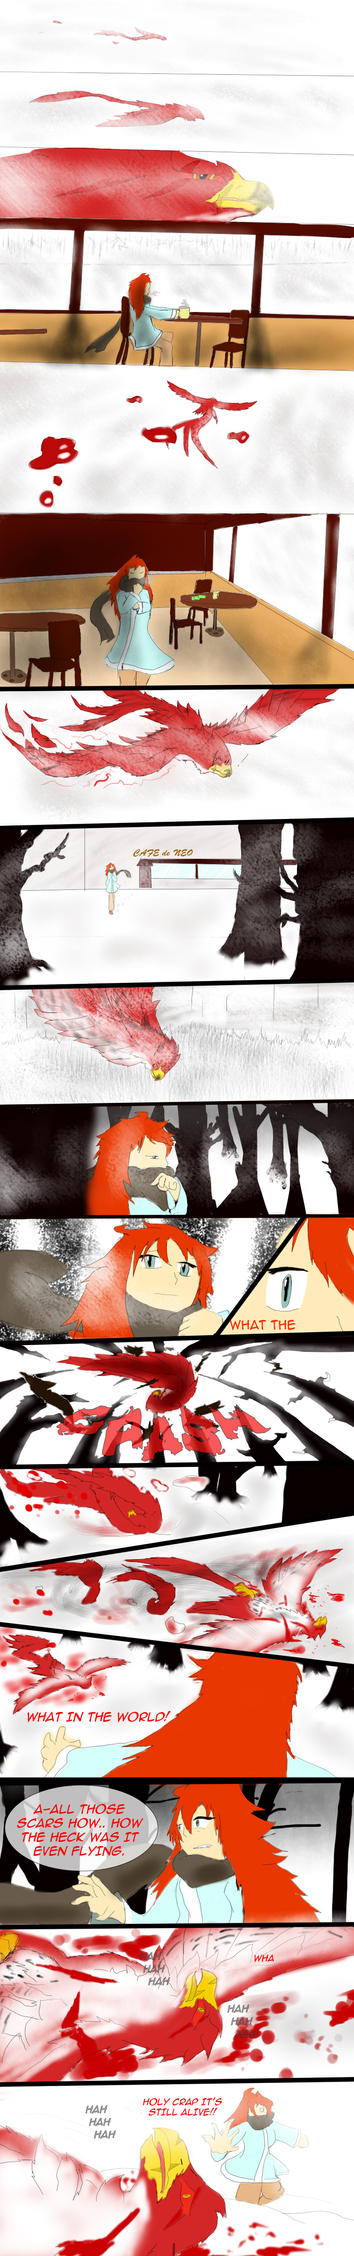 ZP - The Change, Sara - part 1 by teriax